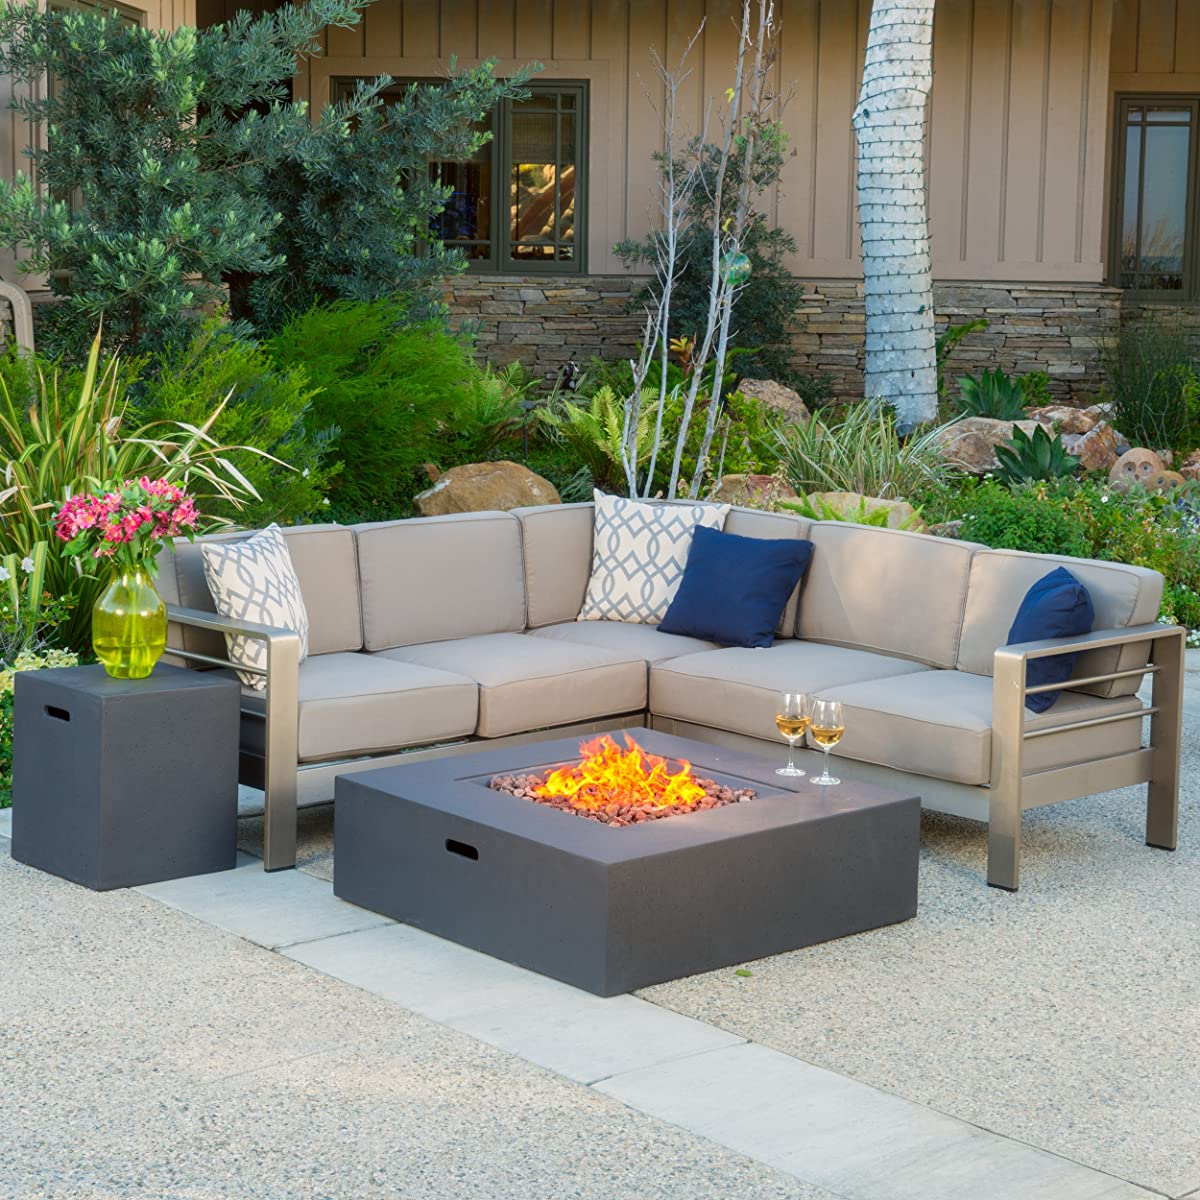 Christopher Knight Home 299881 Crested Bay Outdoor Aluminum Sectional Sofa Set with Propane Fire Table | Khaki/Gr, Grey